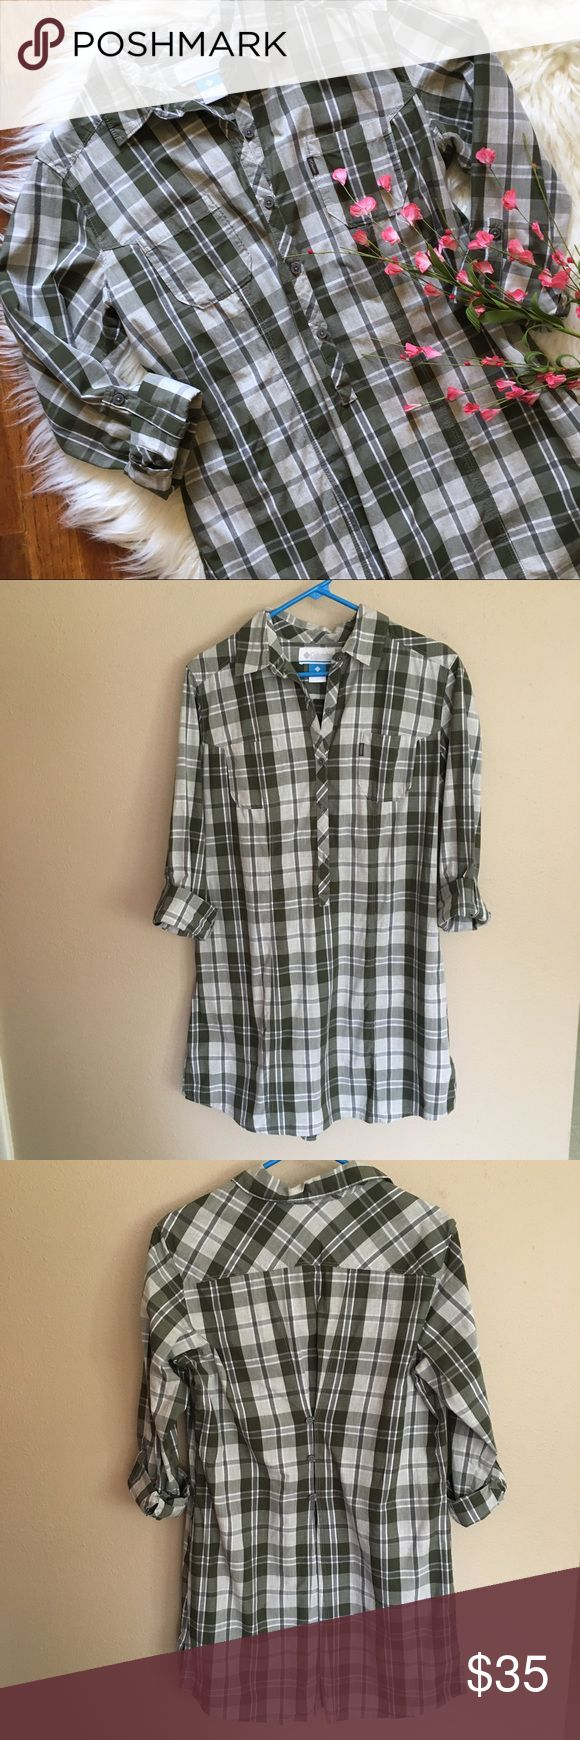 """Columbia olive green plaid popover shirt dress Olive green plaid dress. Cute button details on the back. Sleeve can be worn 3/4 or long sleeve. ~33"""" long and 40"""" bust. Can be worn as a shorter dress or as a tunic. Great to layer this fall. In excellent condition.  (E67) Columbia Dresses Long Sleeve"""